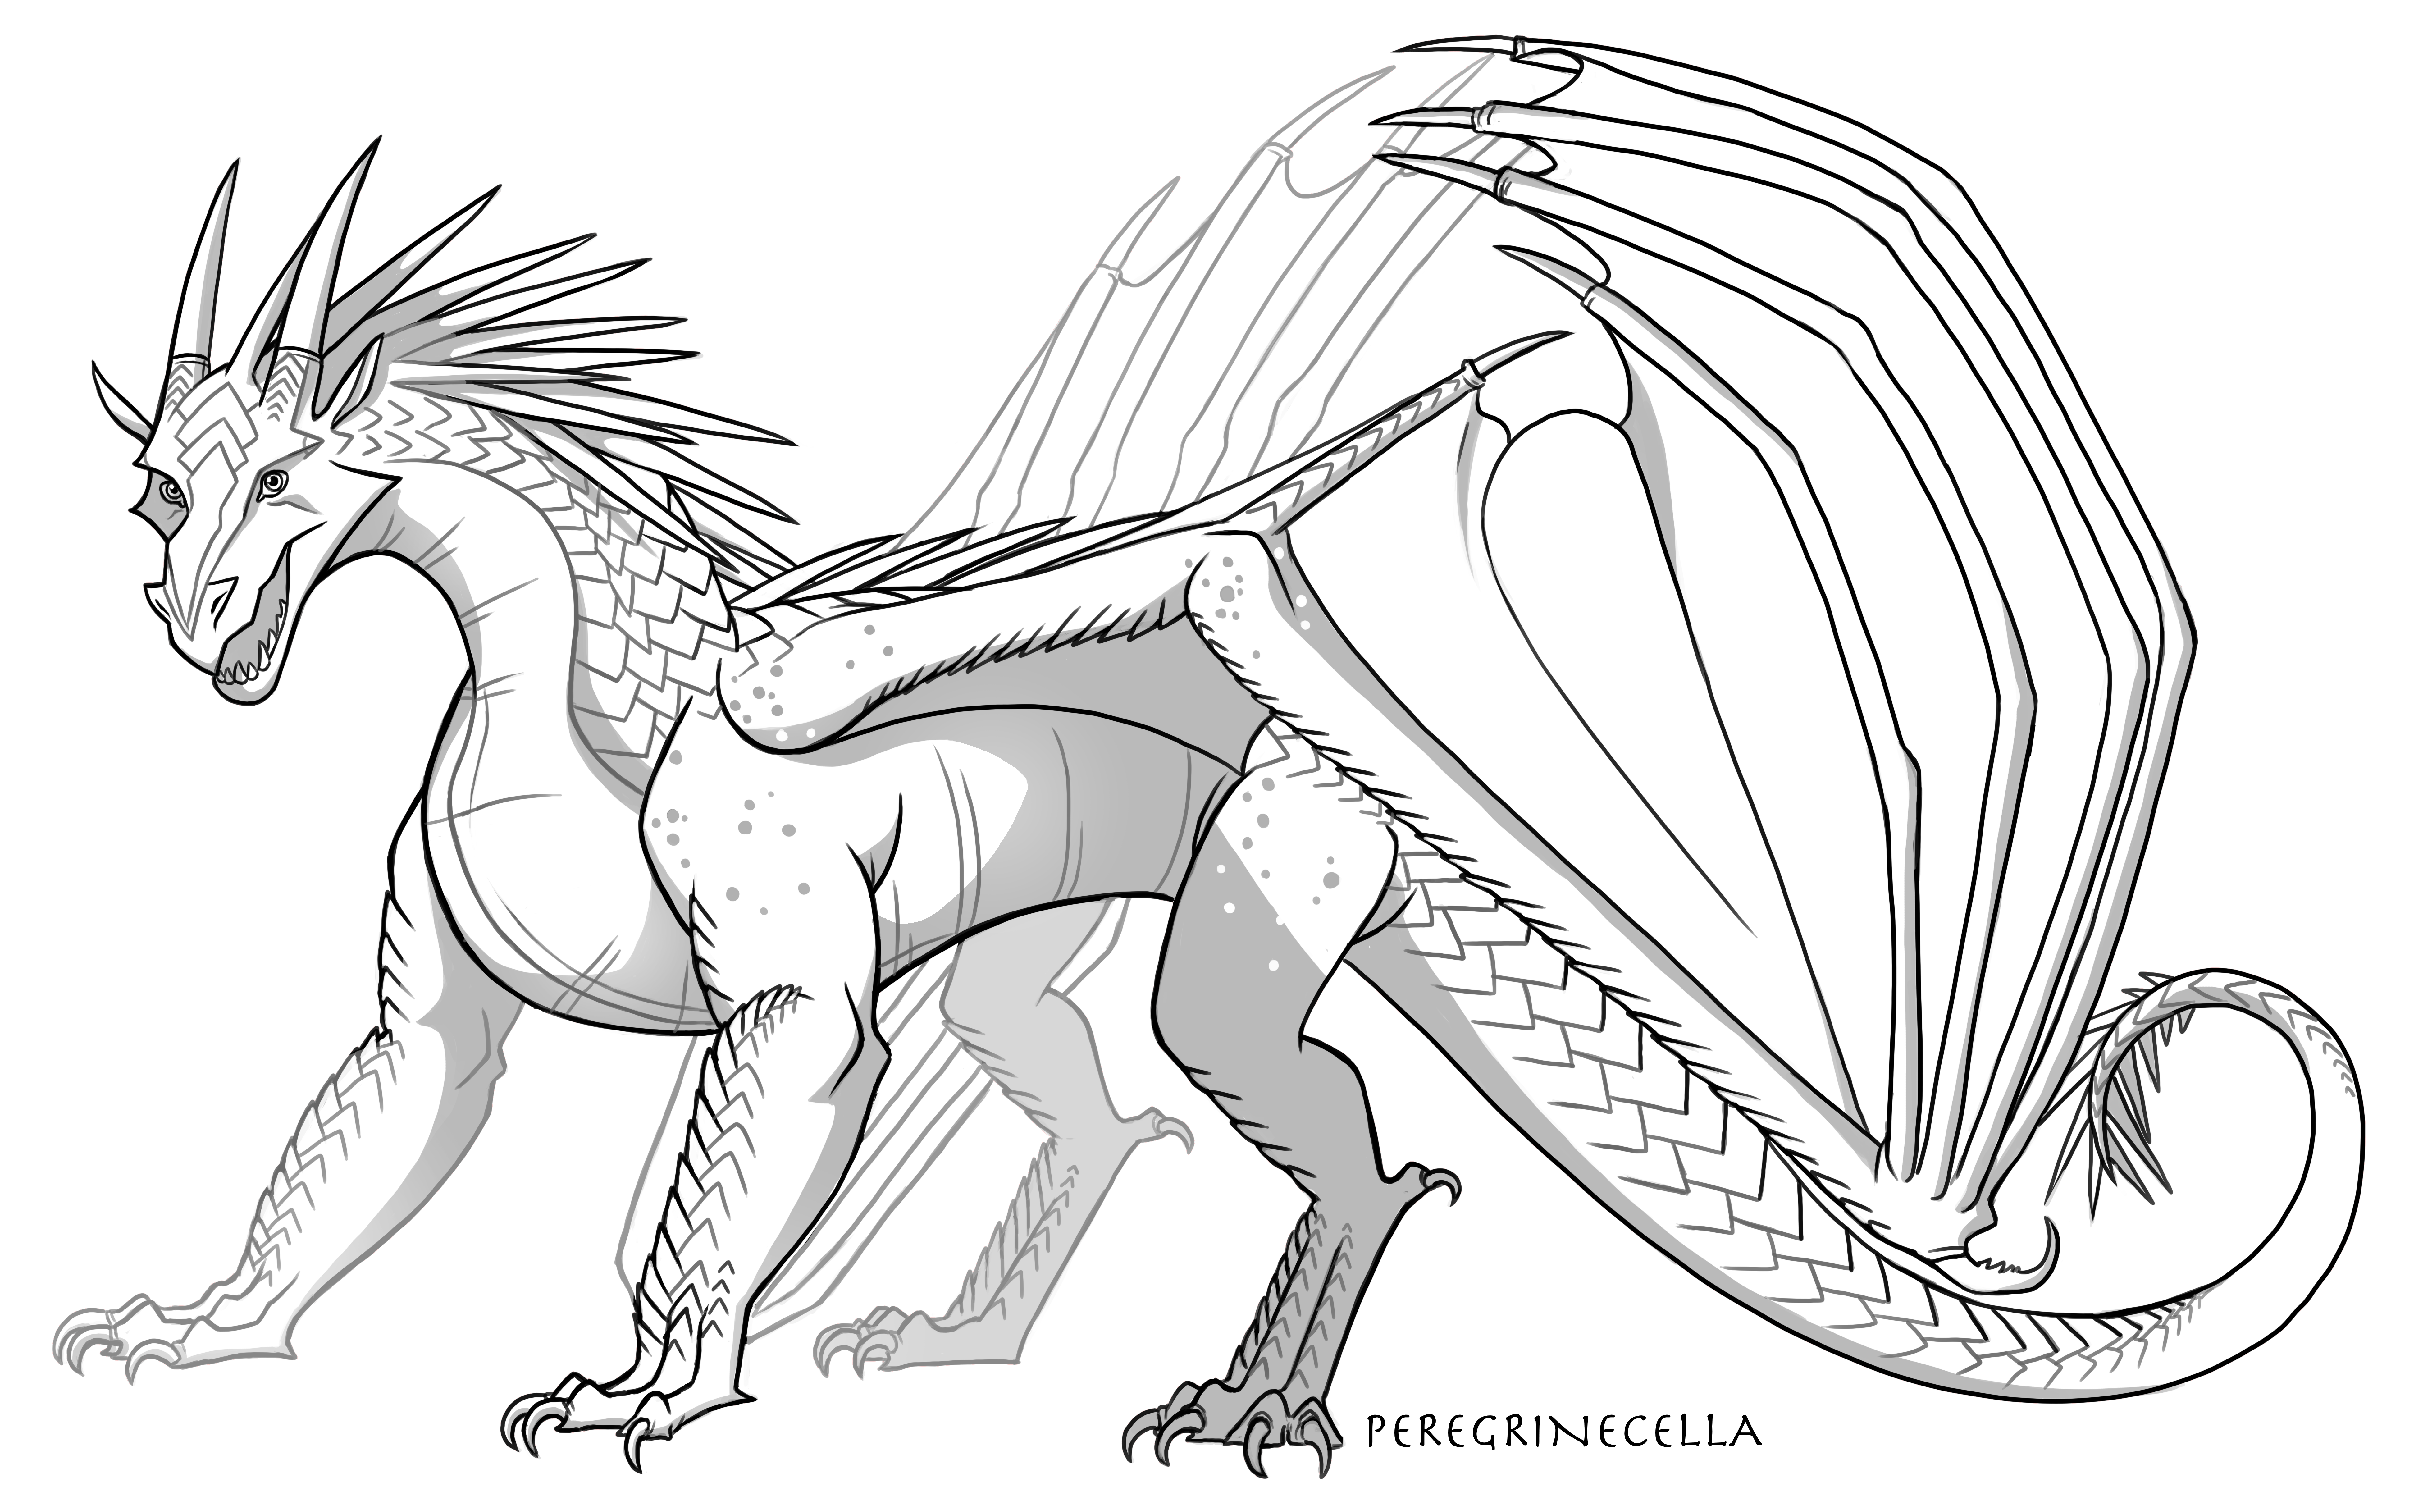 Icewing Base By Peregrinecella On Deviantart In 2020 Wings Of Fire Dragons Wings Of Fire Fire Art